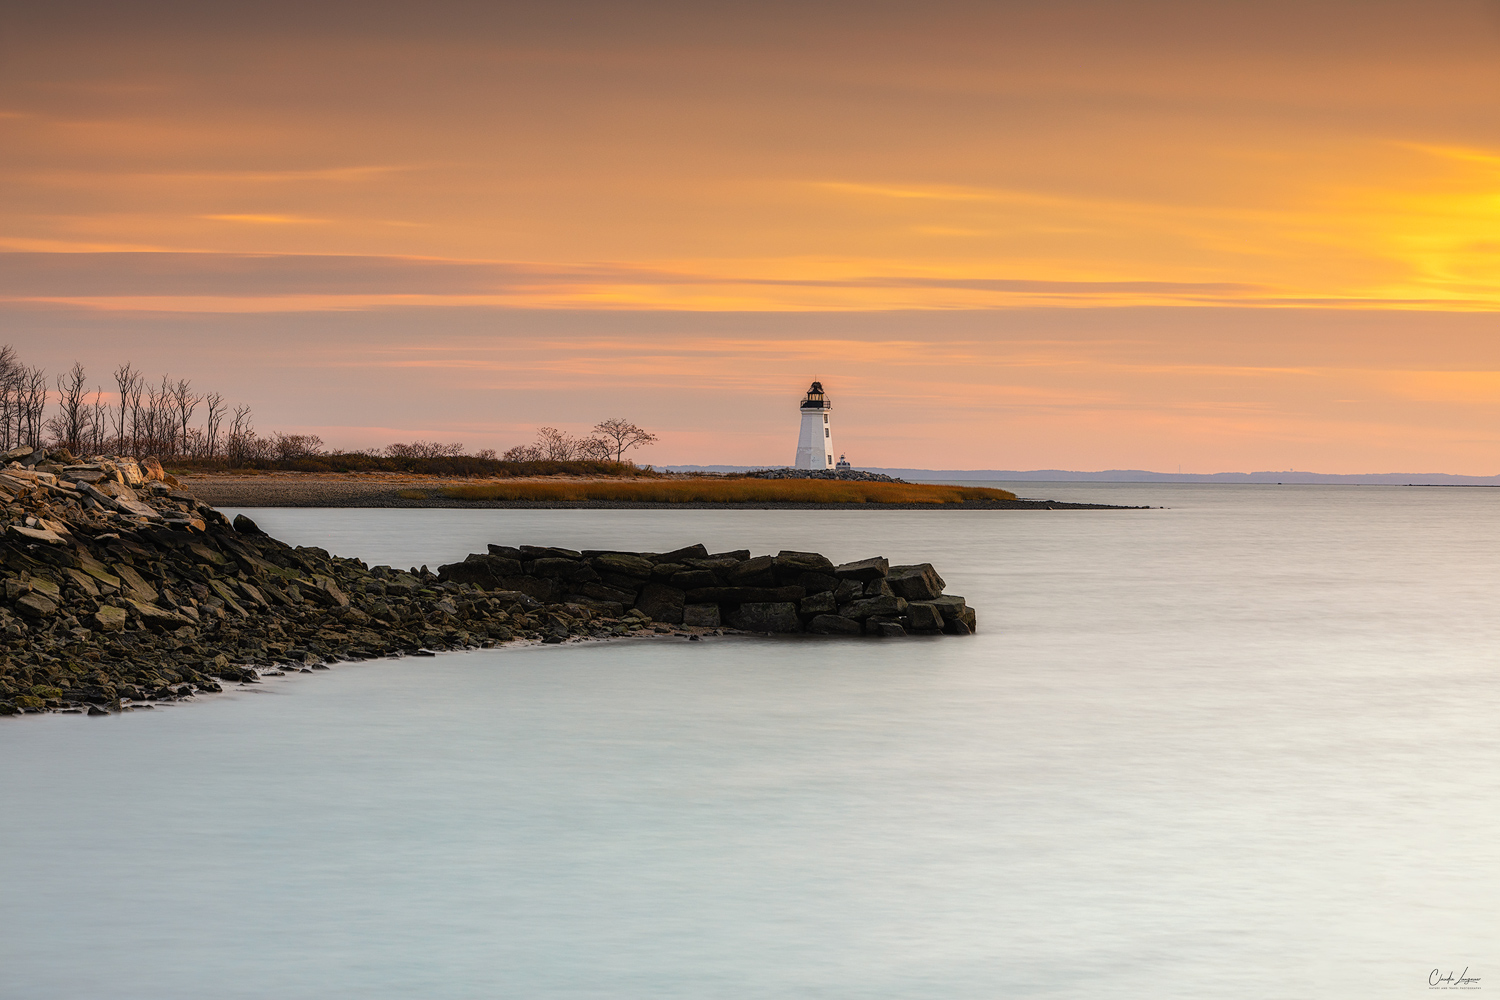 View of Fayerweather Lighthouse in Bridgeport Connecticut at sunset.